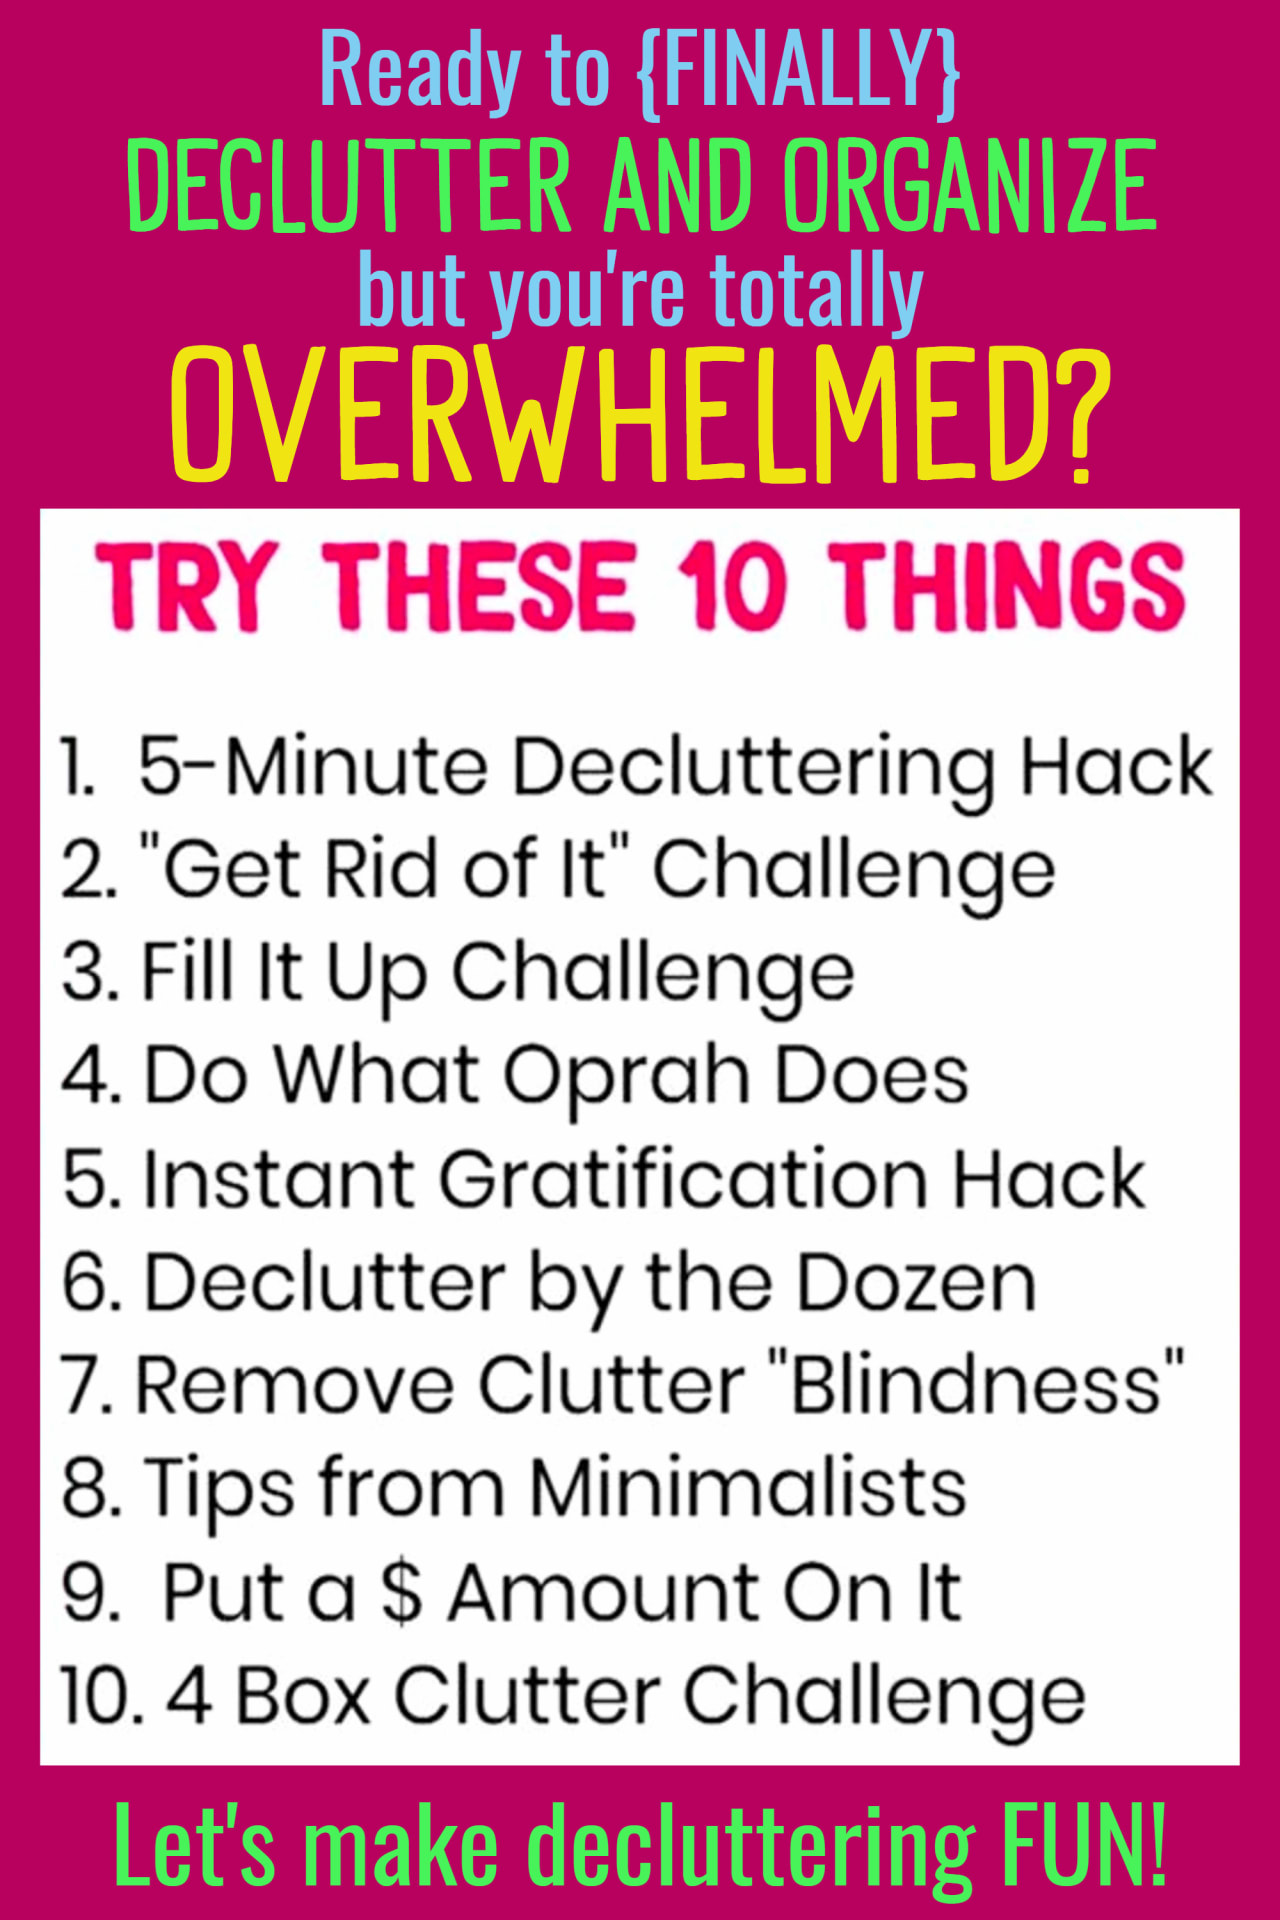 Easy decluttering tips - Organizing Ideas For The Home - Decluttering Ideas if you're feeling overwhelmed - where to start decluttering and organizing your messy house - decluttering step by step to declutter and organize without feeling overwhelmed